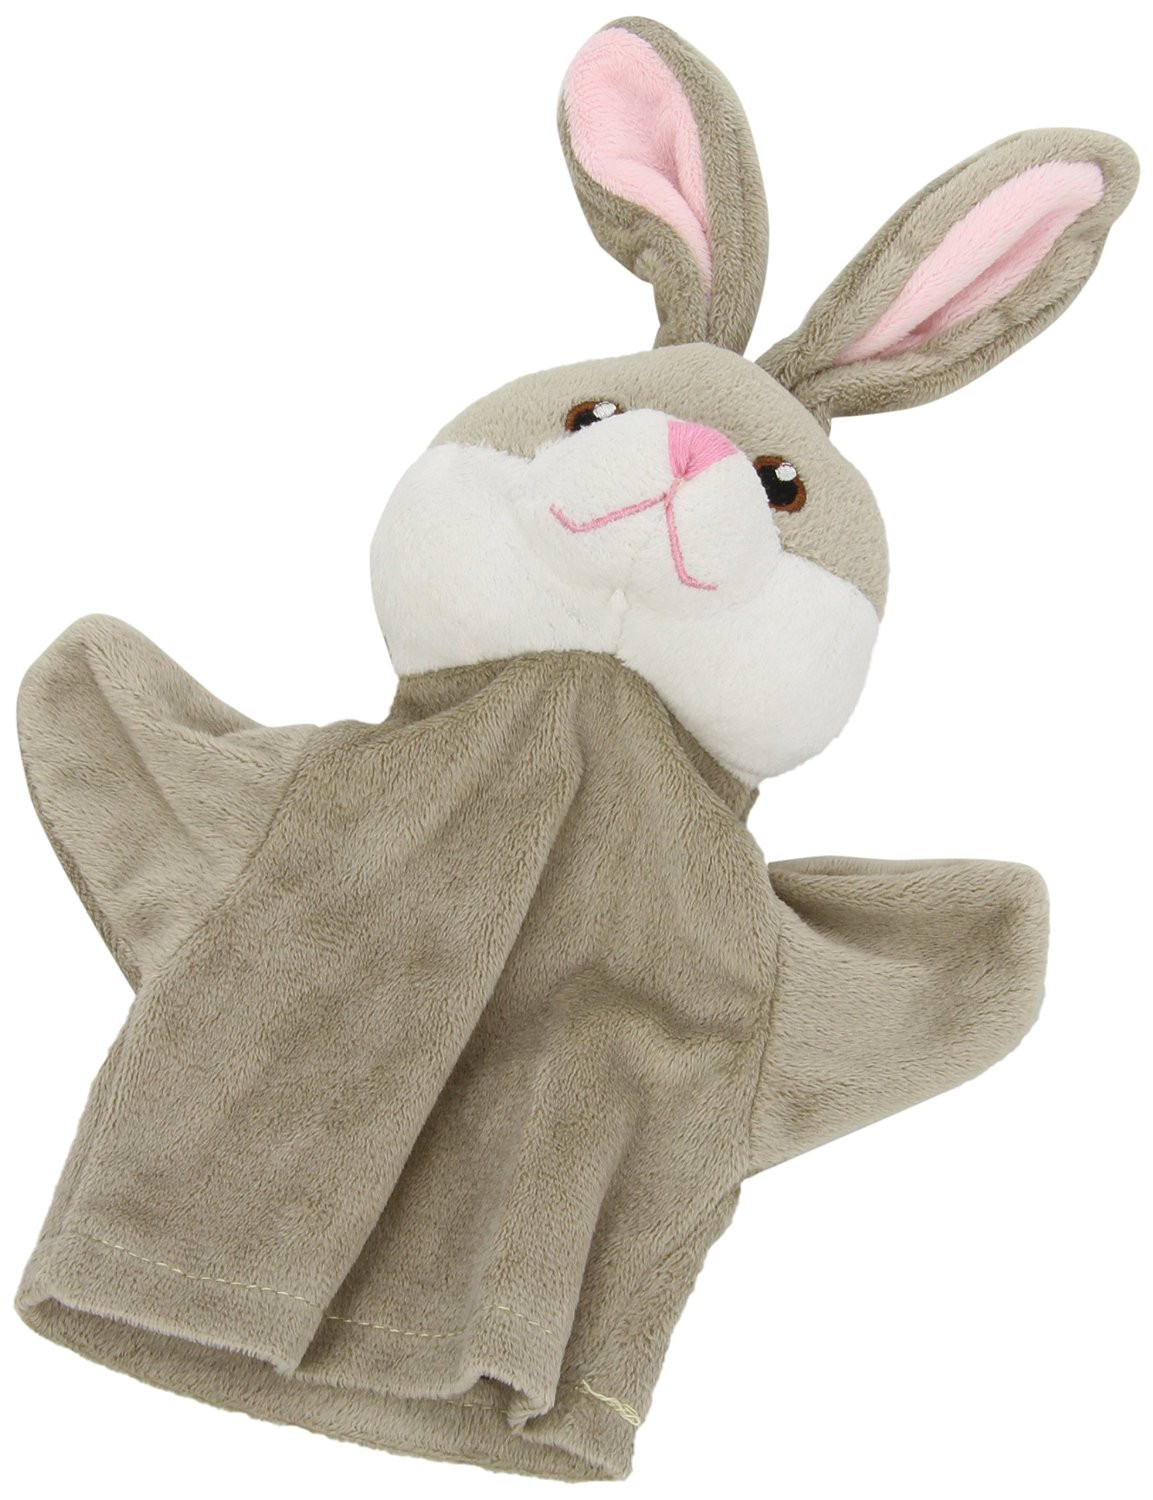 The Puppet Company First Puppet Rabbit